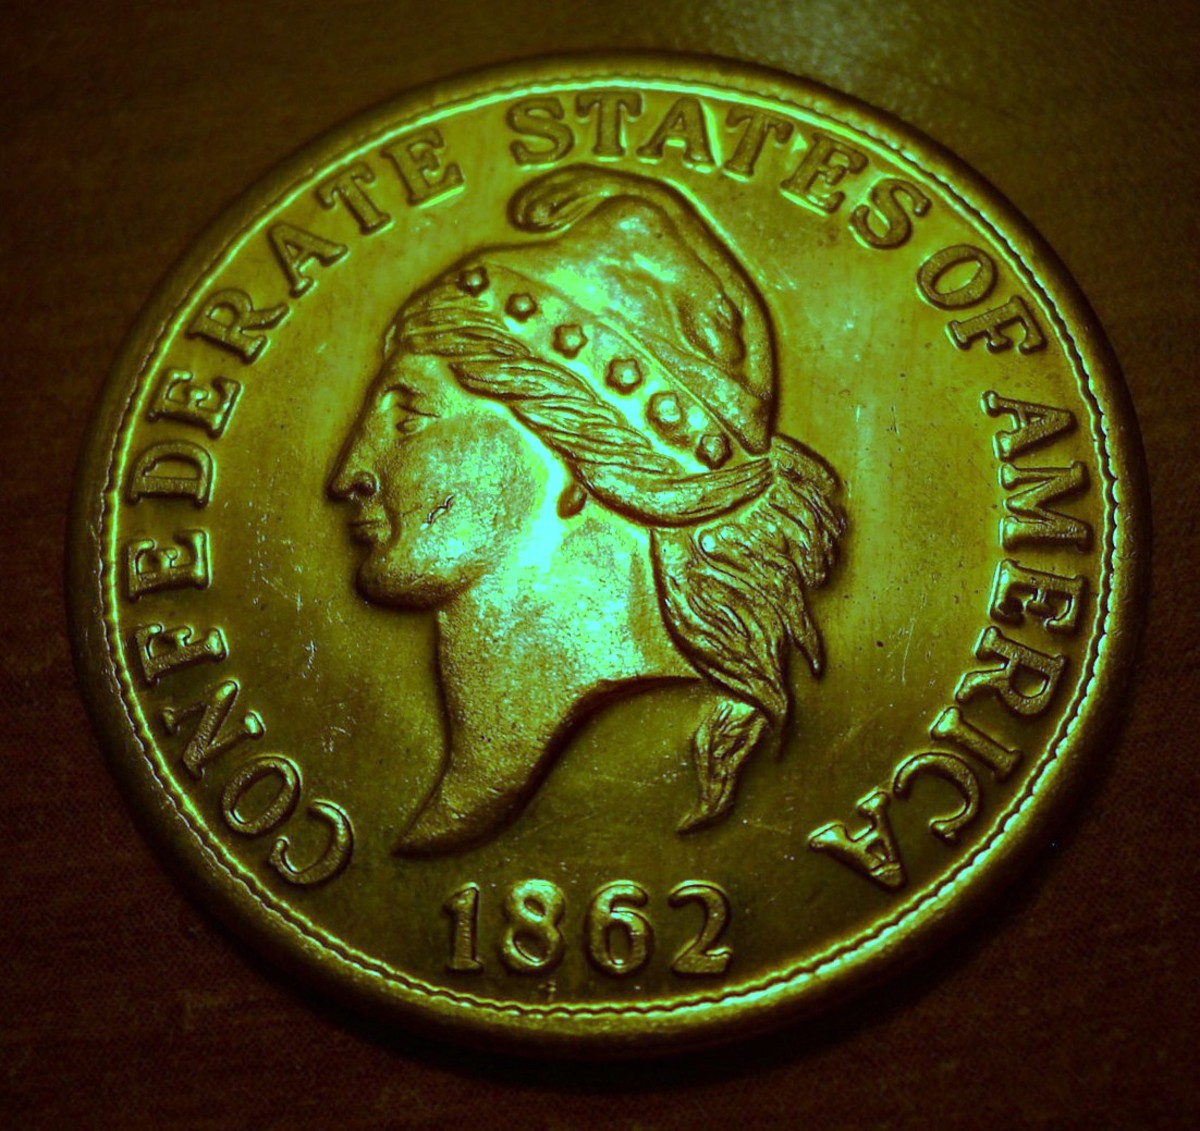 A Very Nice Twenty Dollar Confederate Gold Coin with Detailed Craftsmanship.